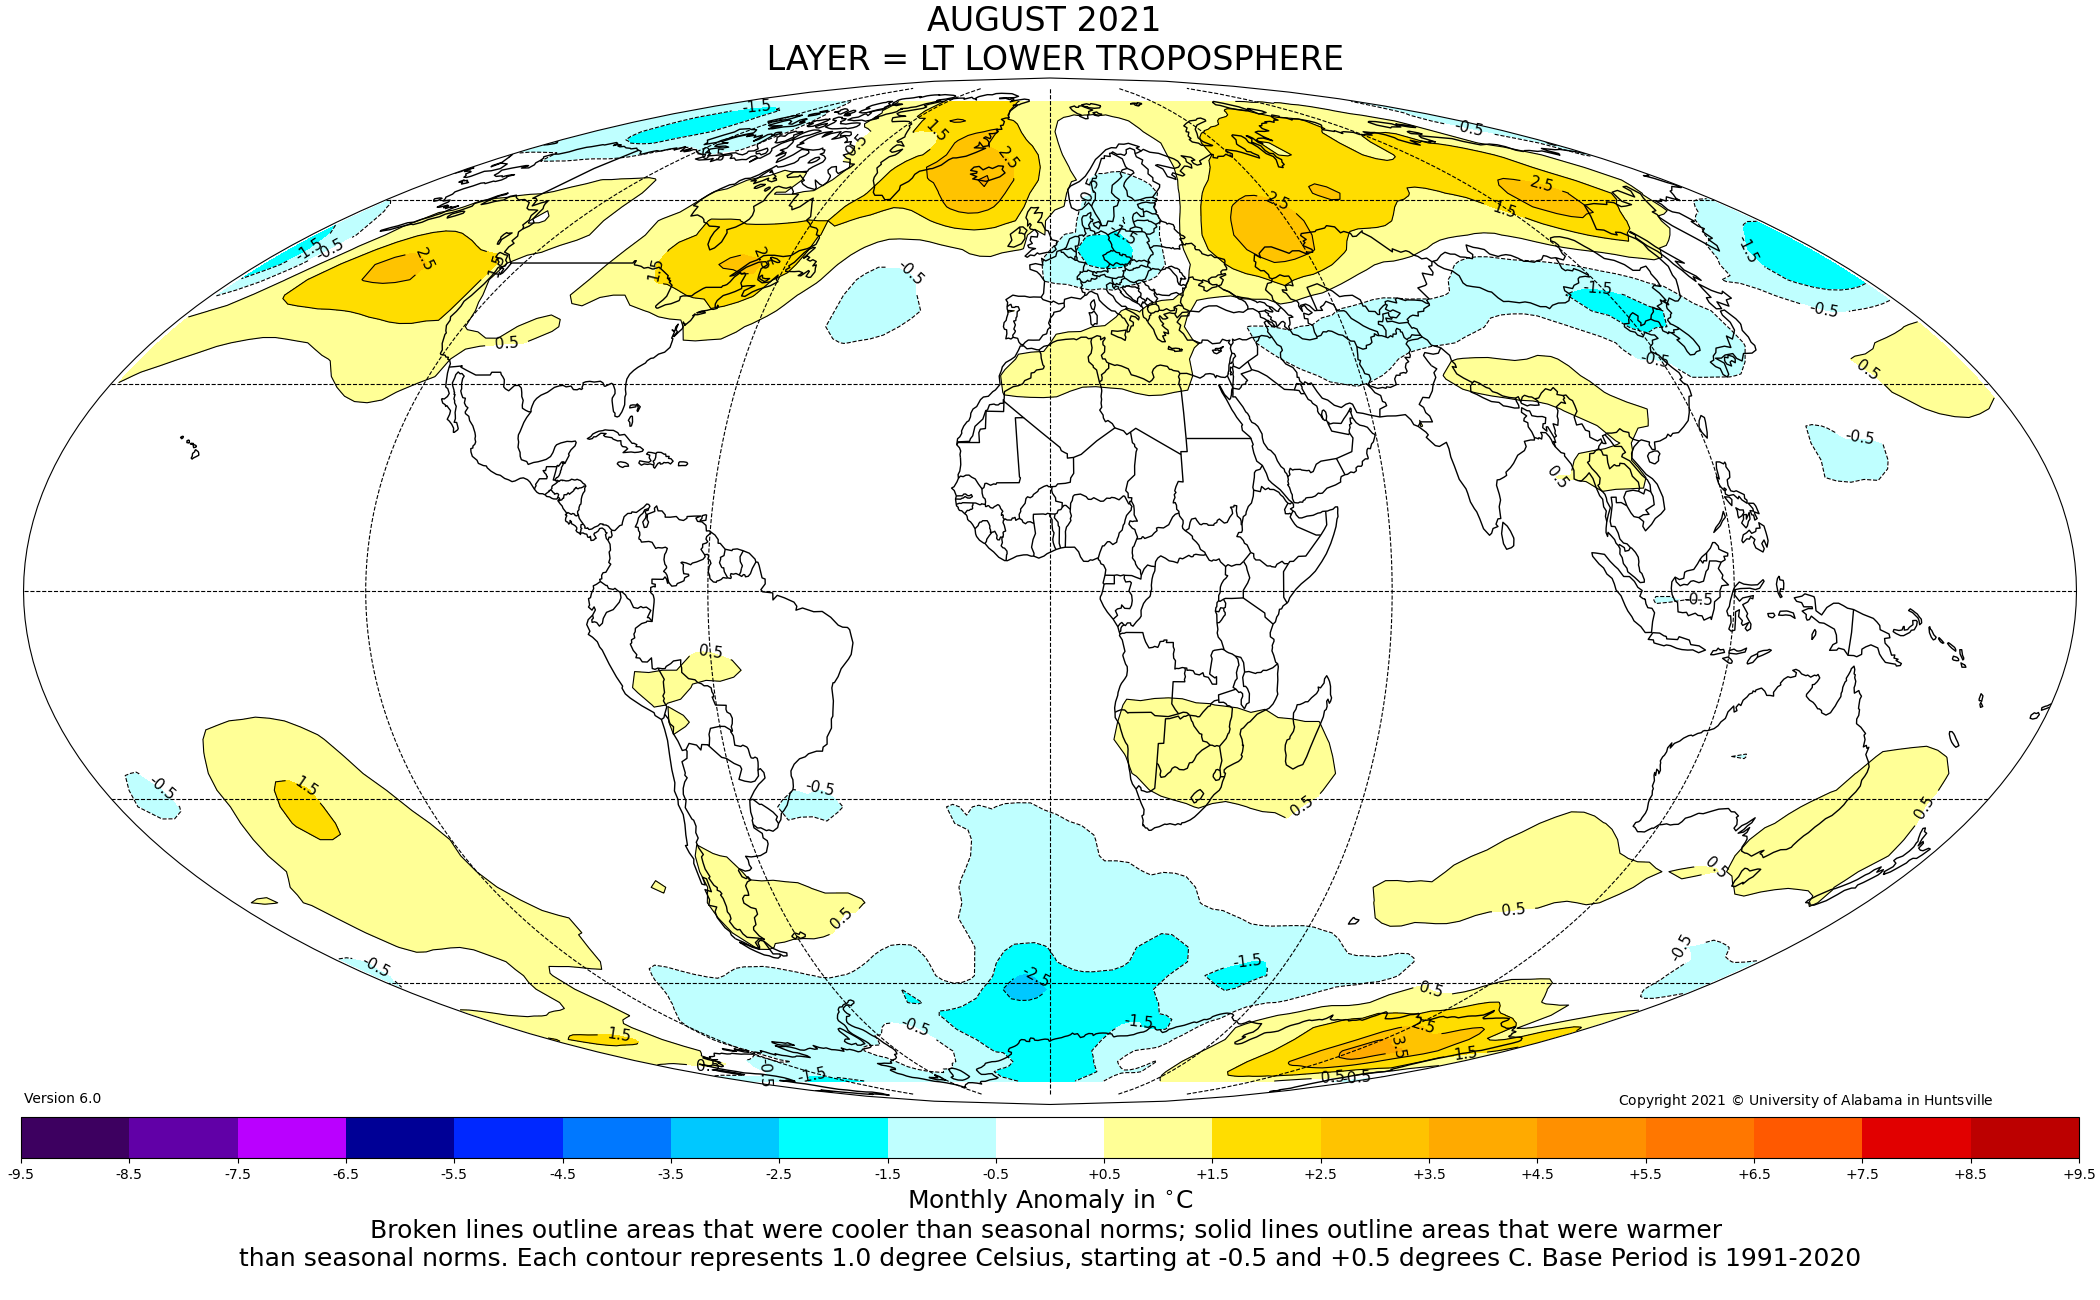 https://www.nsstc.uah.edu/climate/2021/AUGUST2021/202108_Map.png